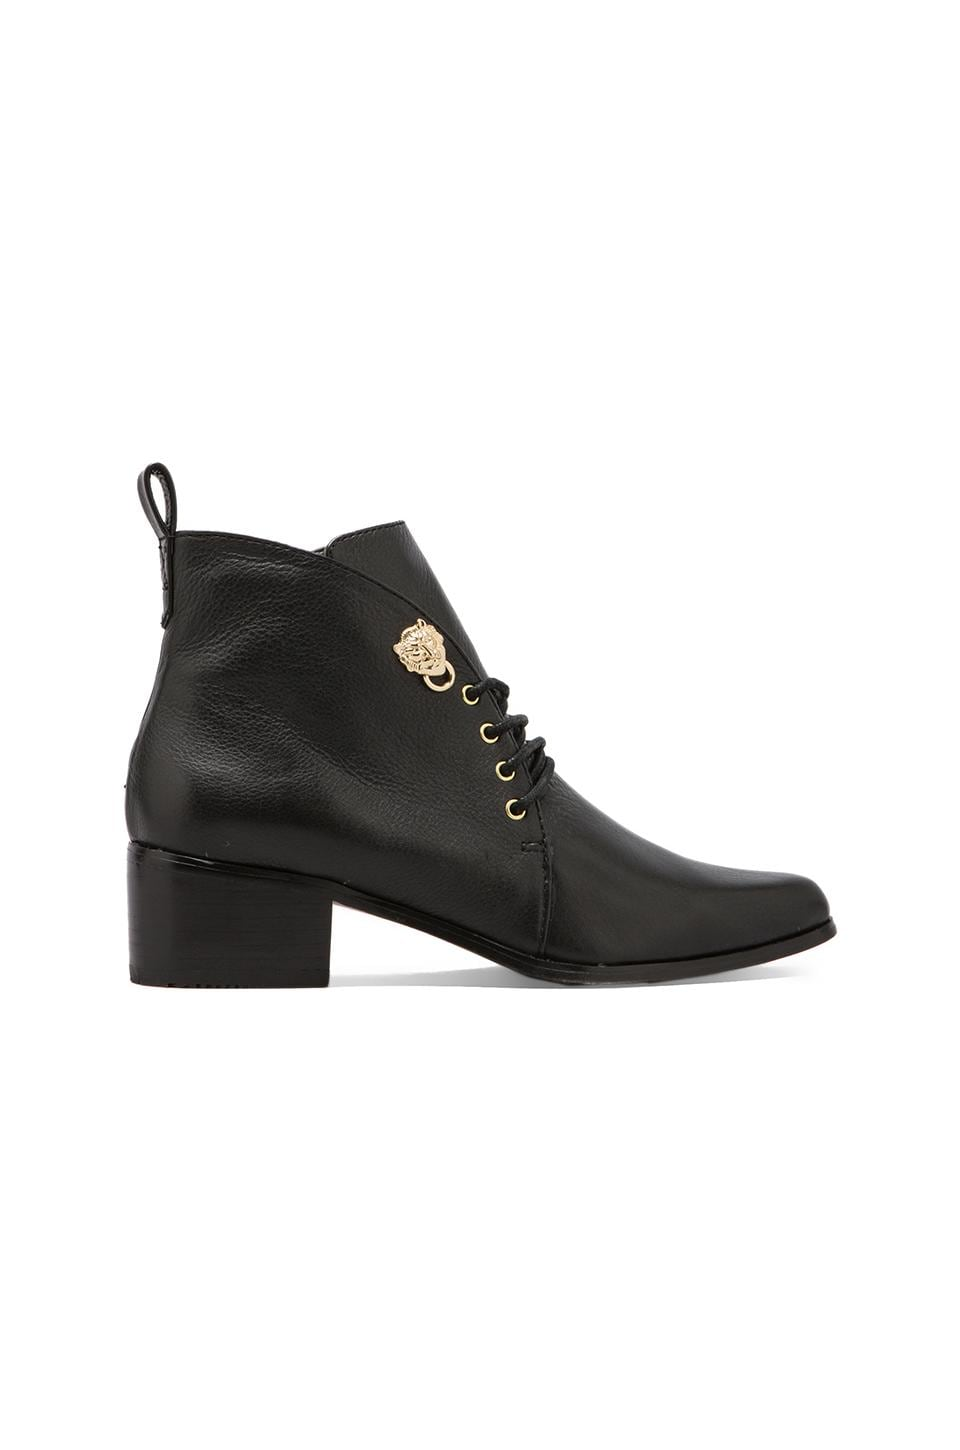 GREY CITY Waverly Boot in Black